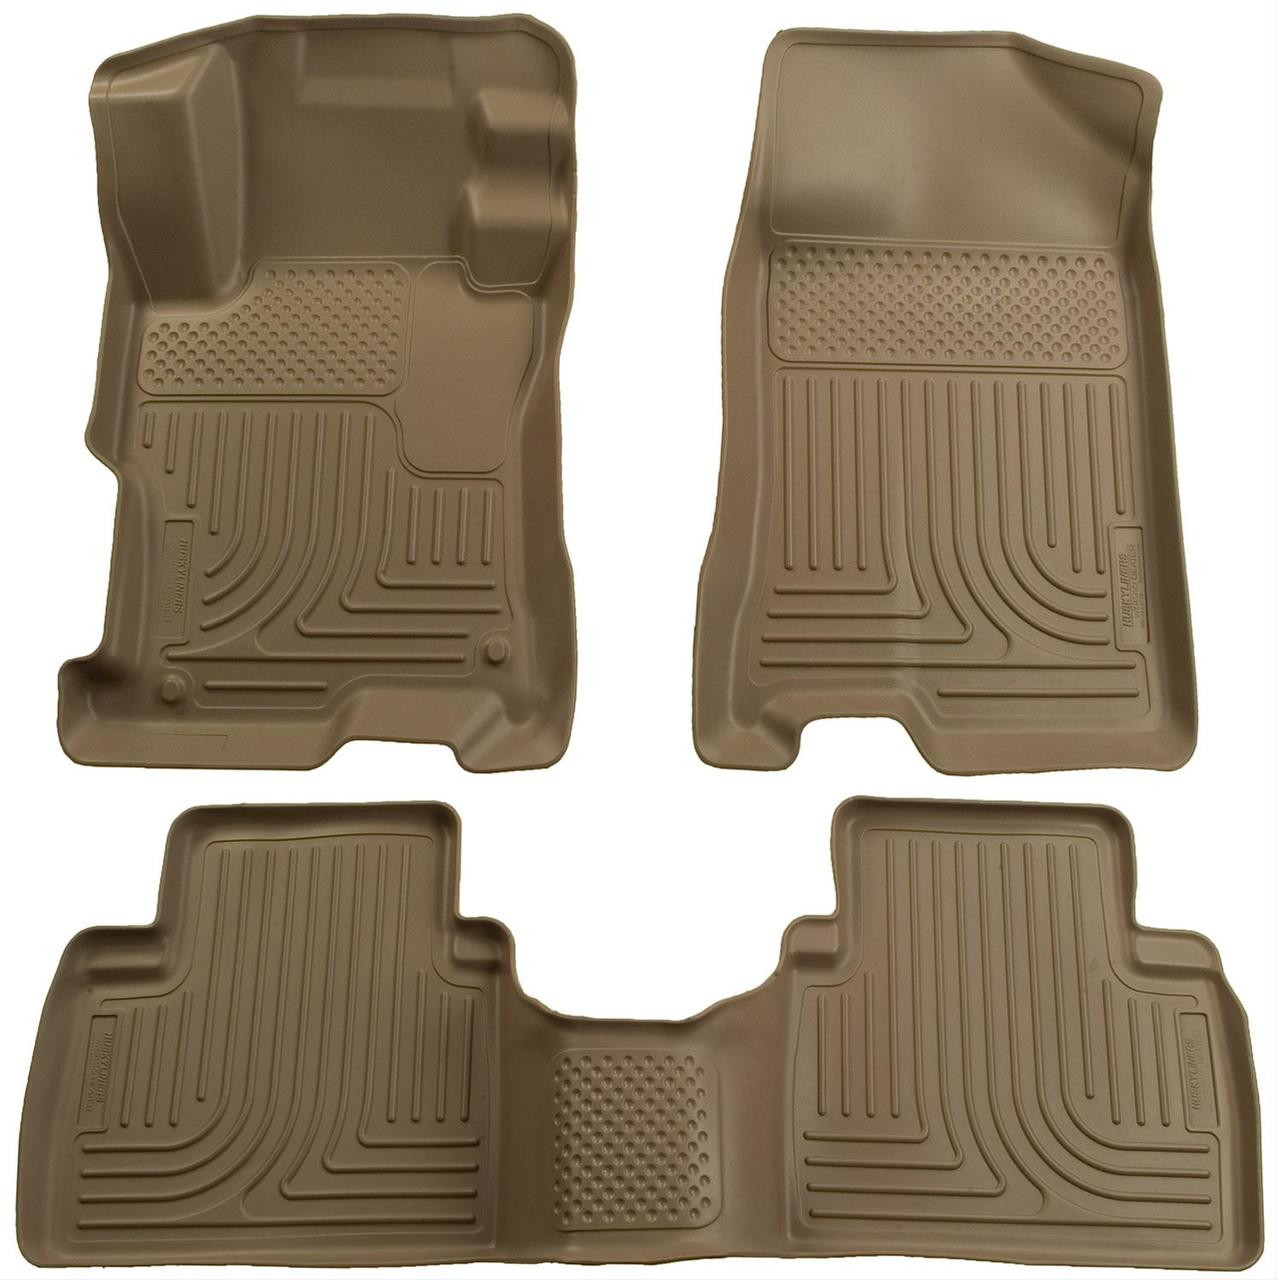 06-09 FUSION/MKZ/MILAN FWD FRONT & SECOND SEAT 3PC. COMBO LINER TAN